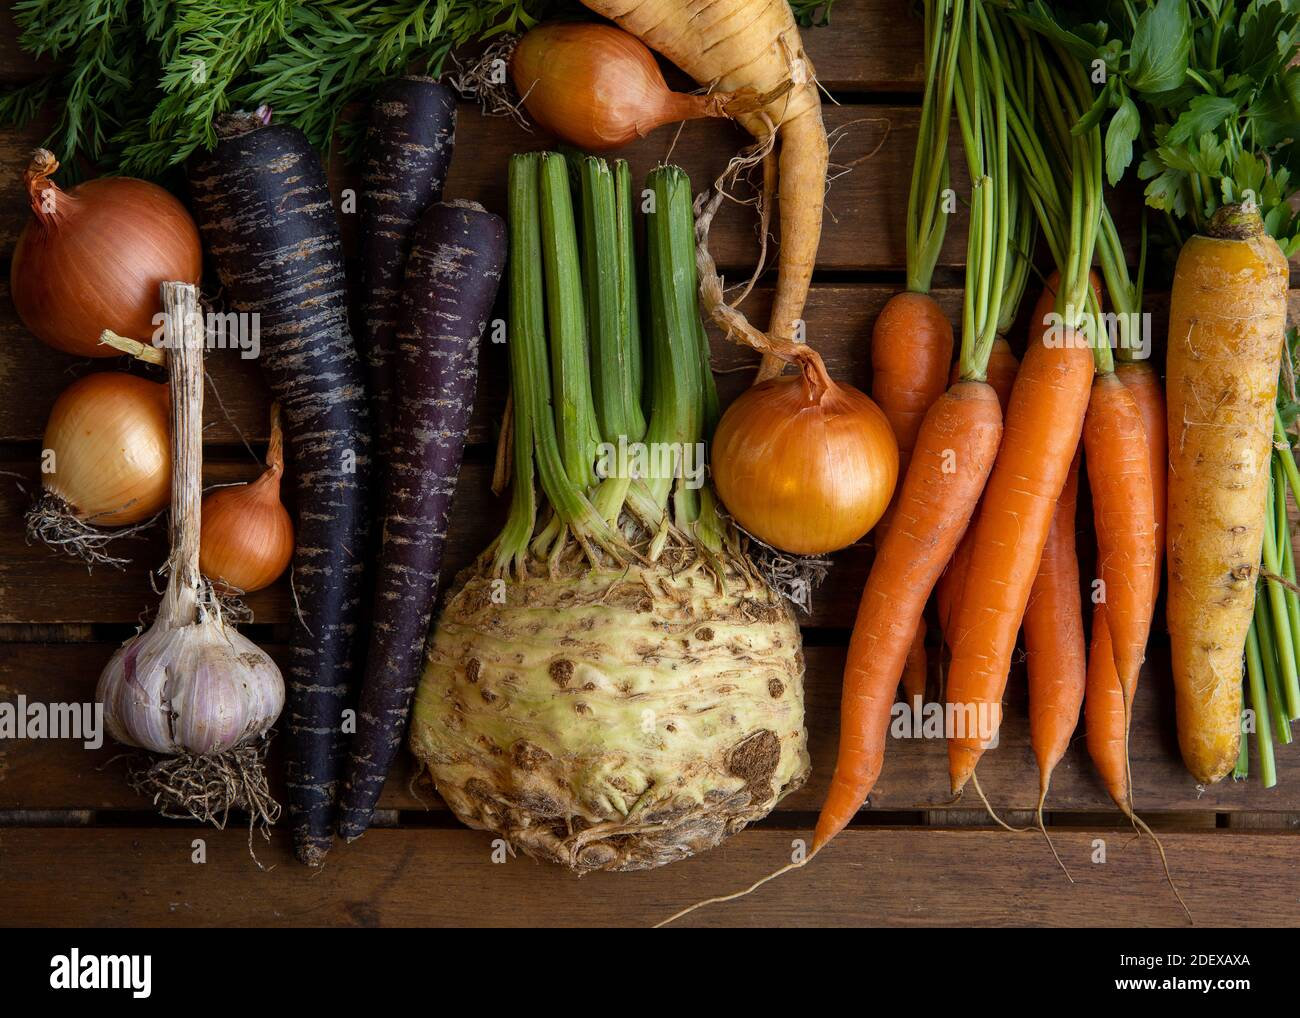 Assortment of colorful root vegetables fresh from the farmer's market including Onions, Garlic, Orange, yellow & Purple Carrots & Celery on wood. Stock Photo